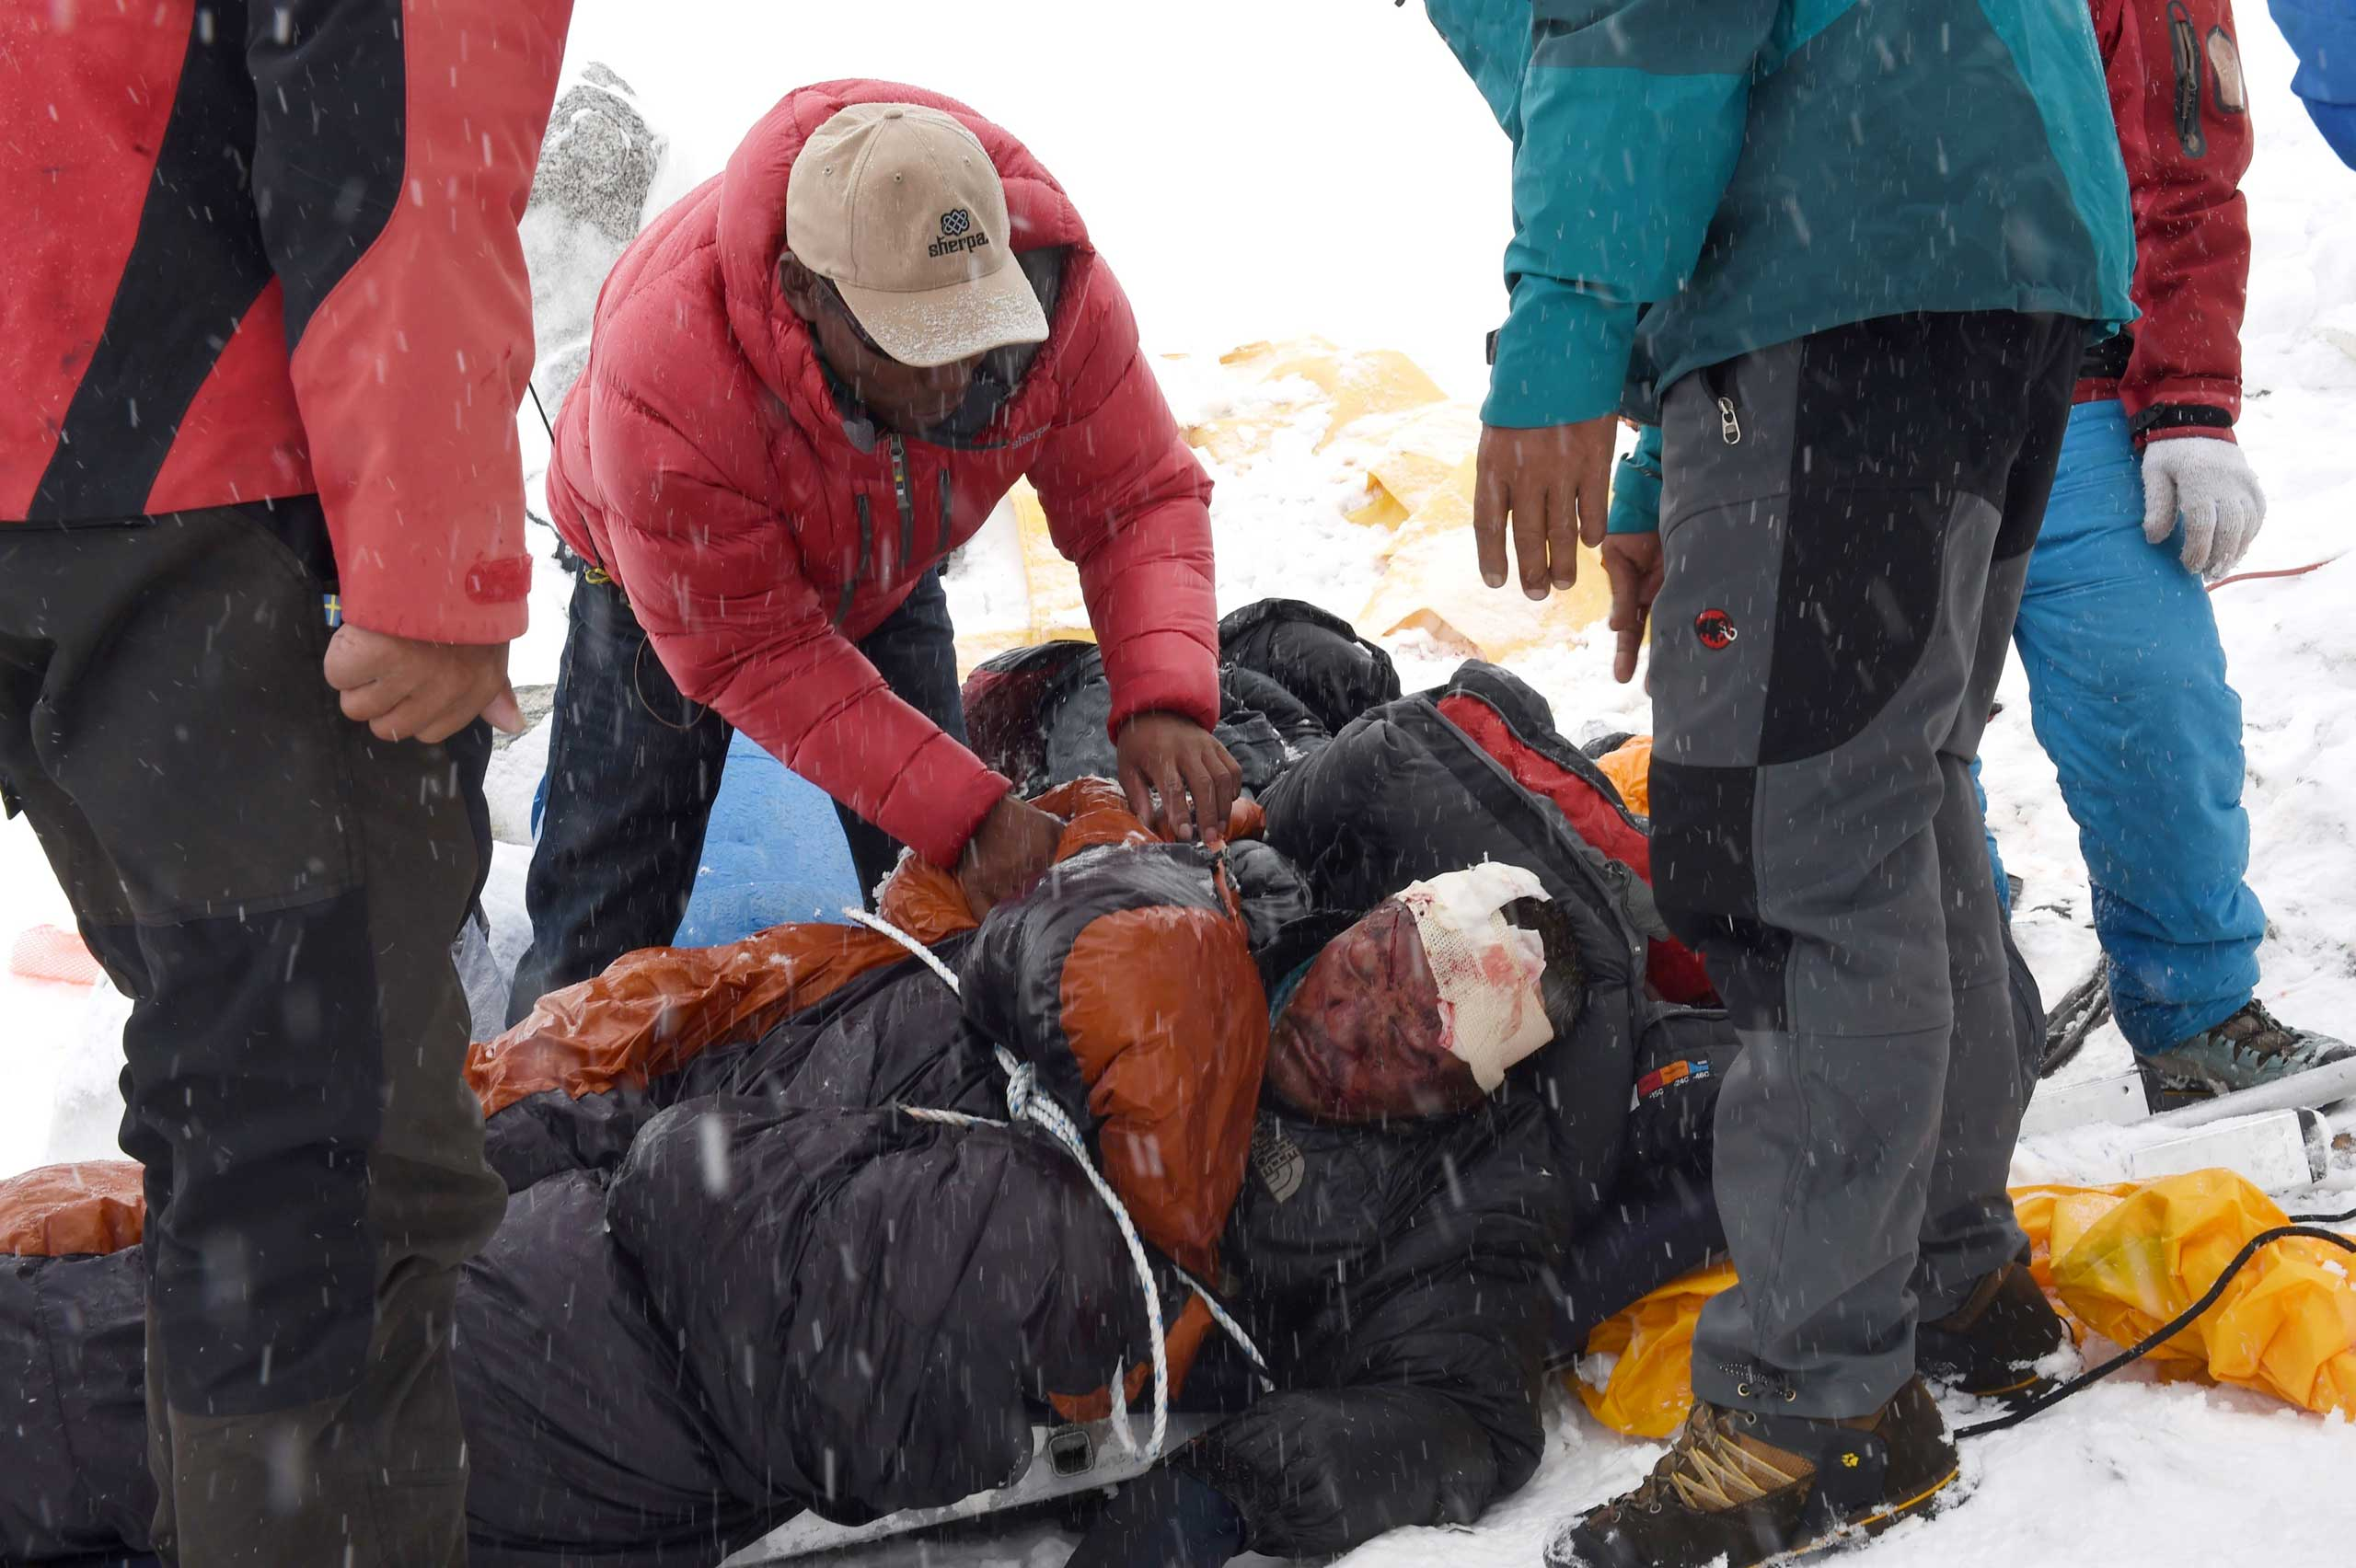 Rescuers tend to an injured sherpa after the avalanche that was triggered by an earthquake outside Kathmandu, Nepal, on April 25, 2015.